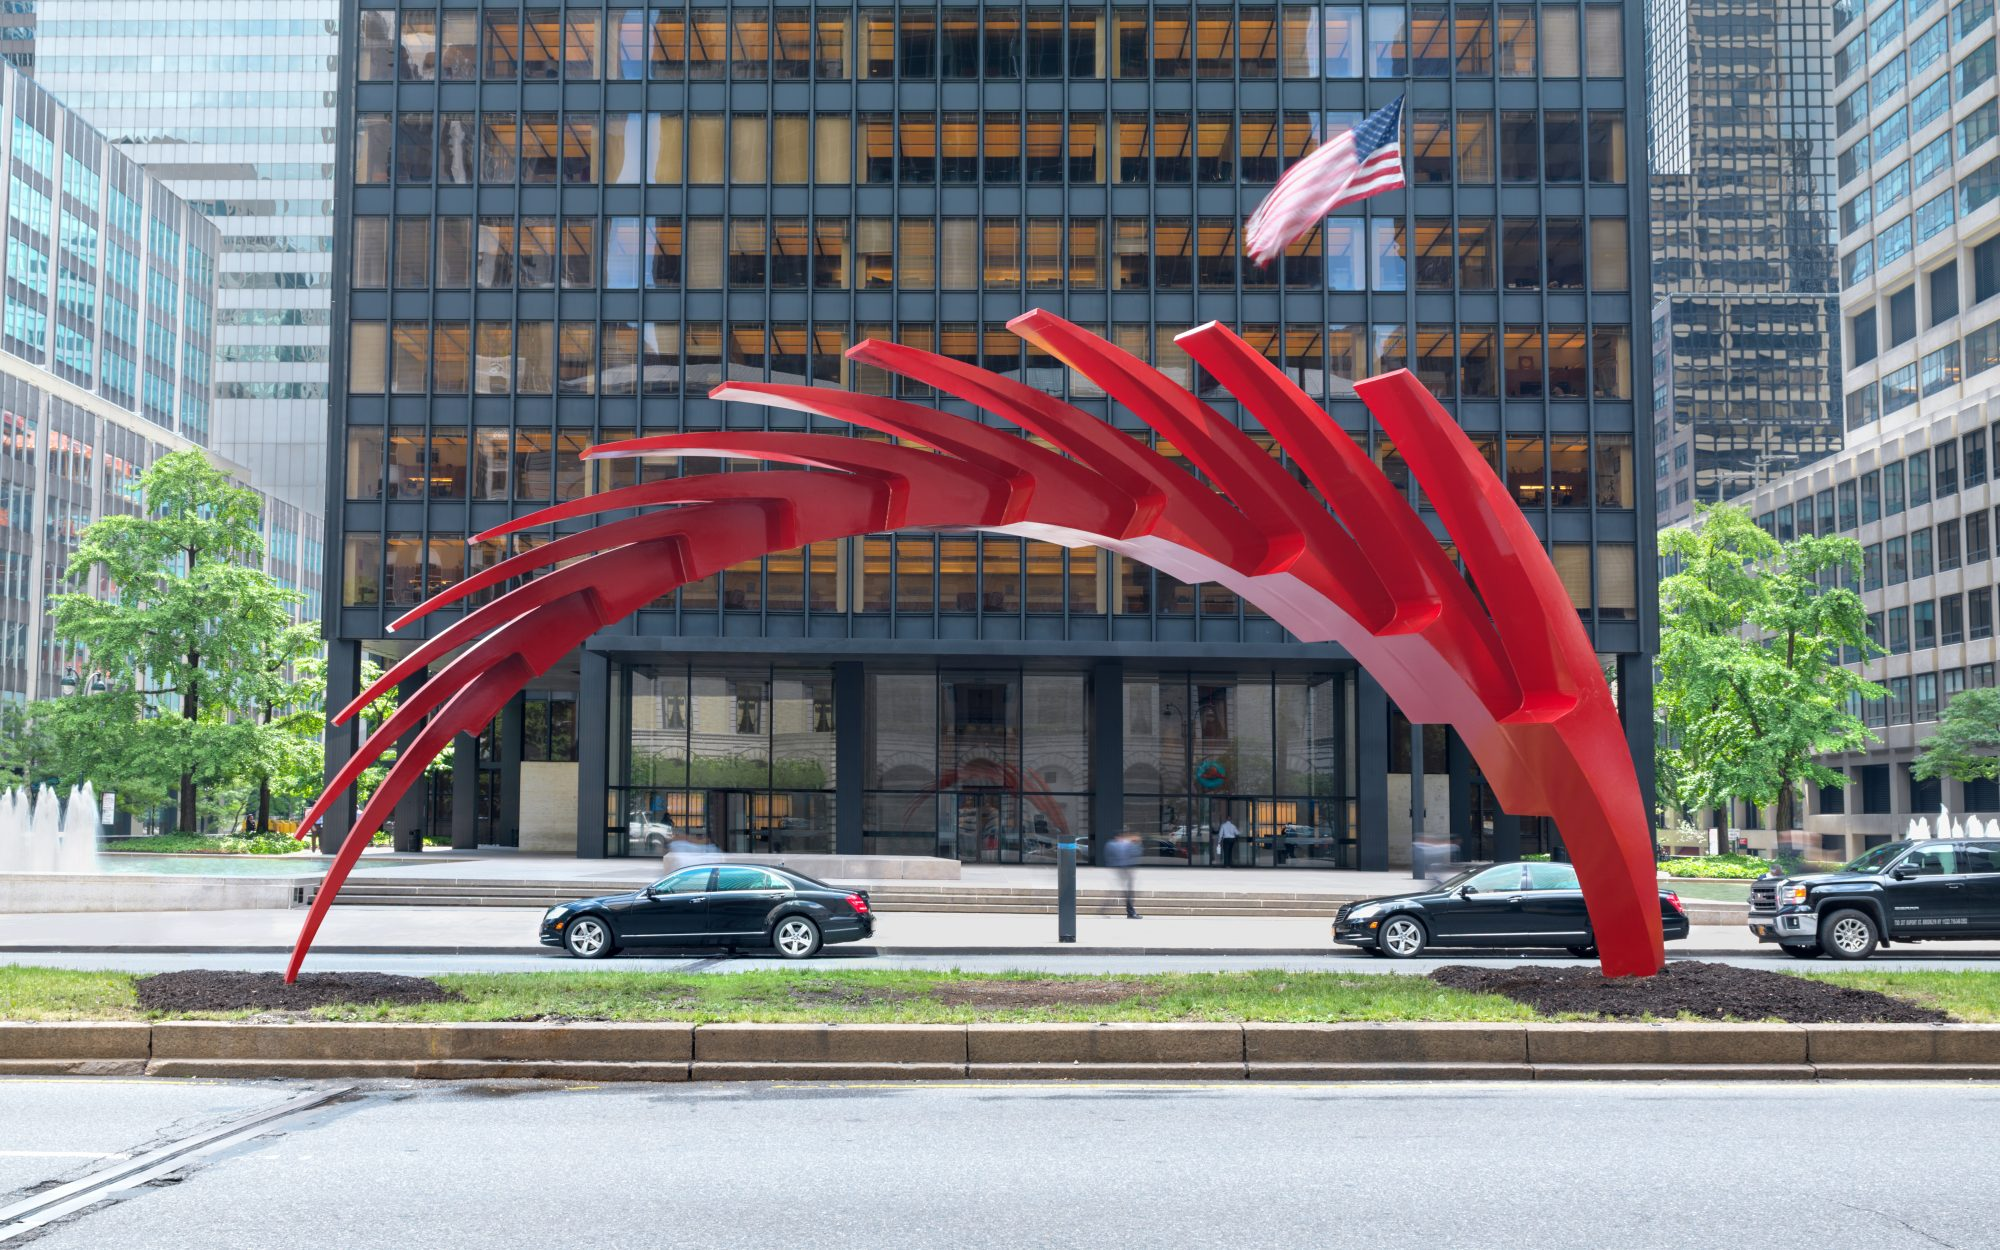 Architect Santiago Calatrava Designed Sculptures for Park Avenue